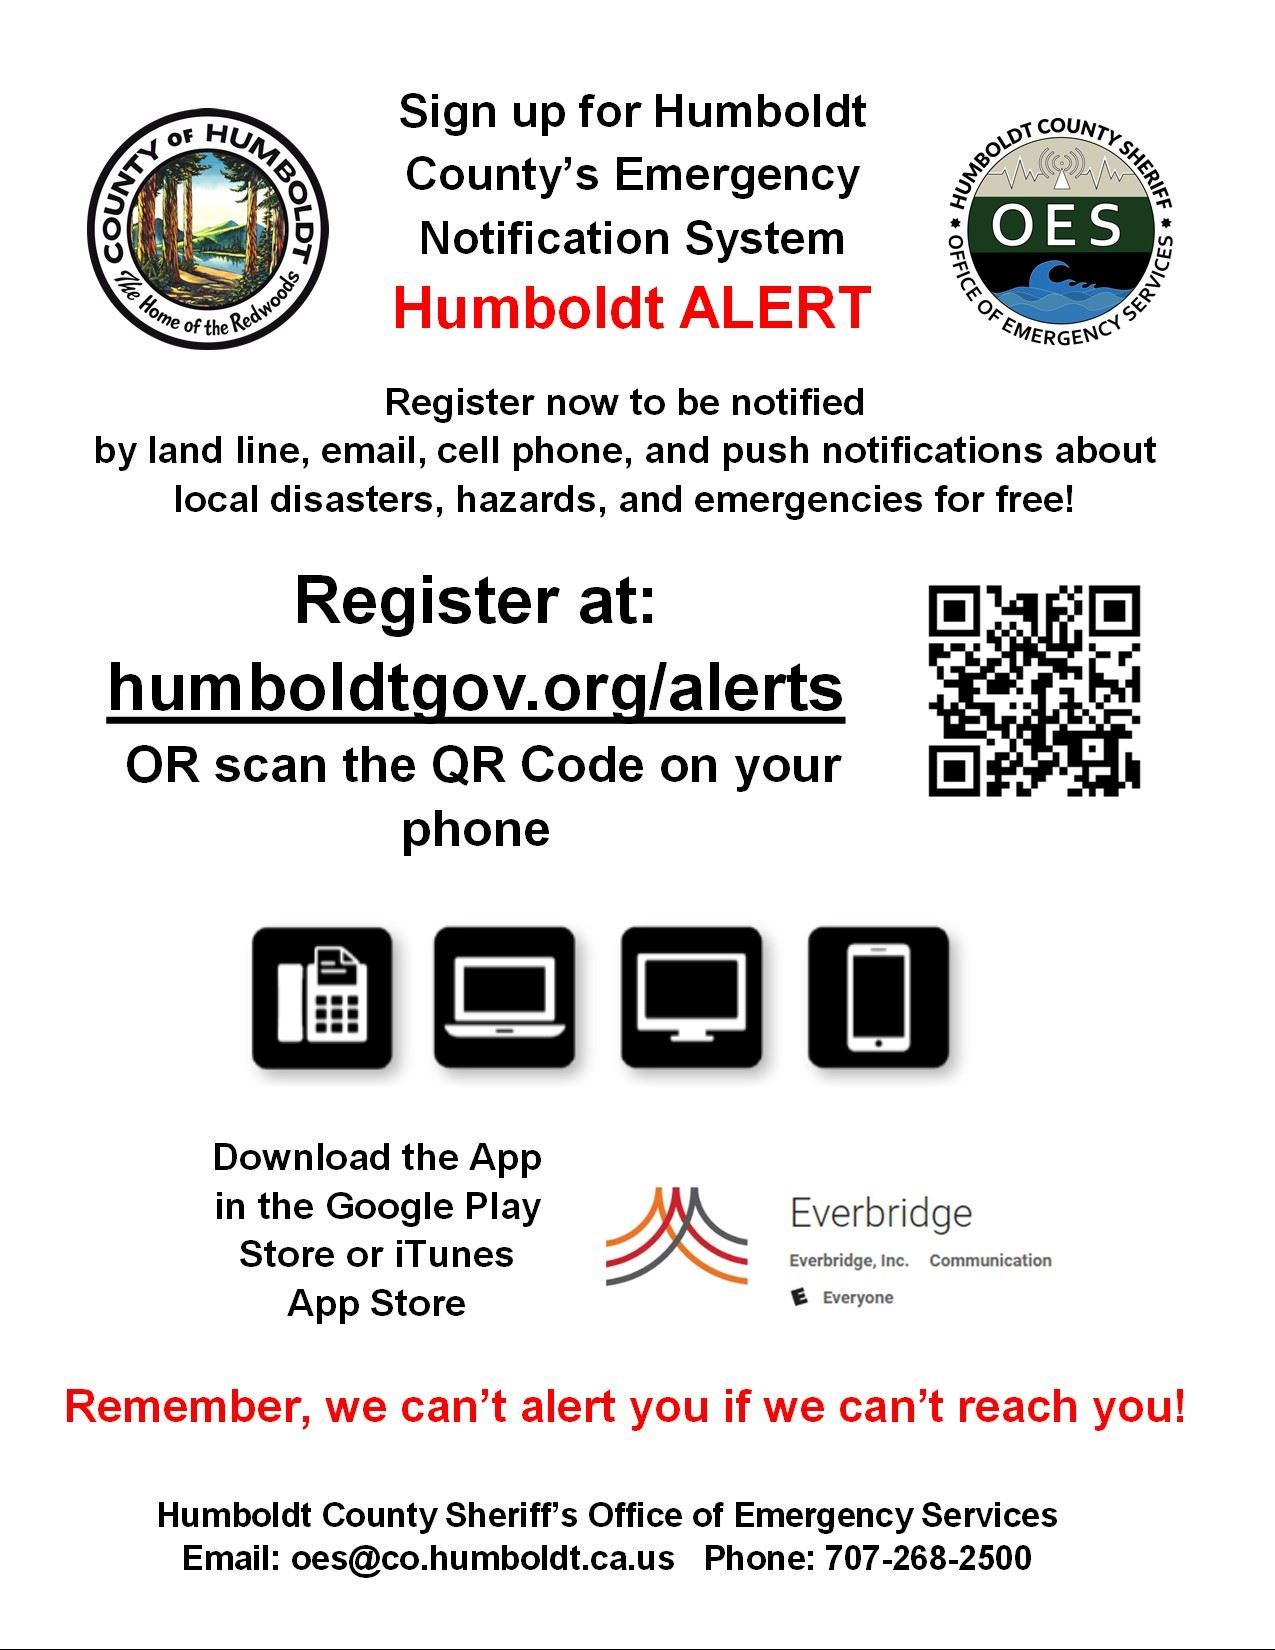 Sign up for Humboldt Alert